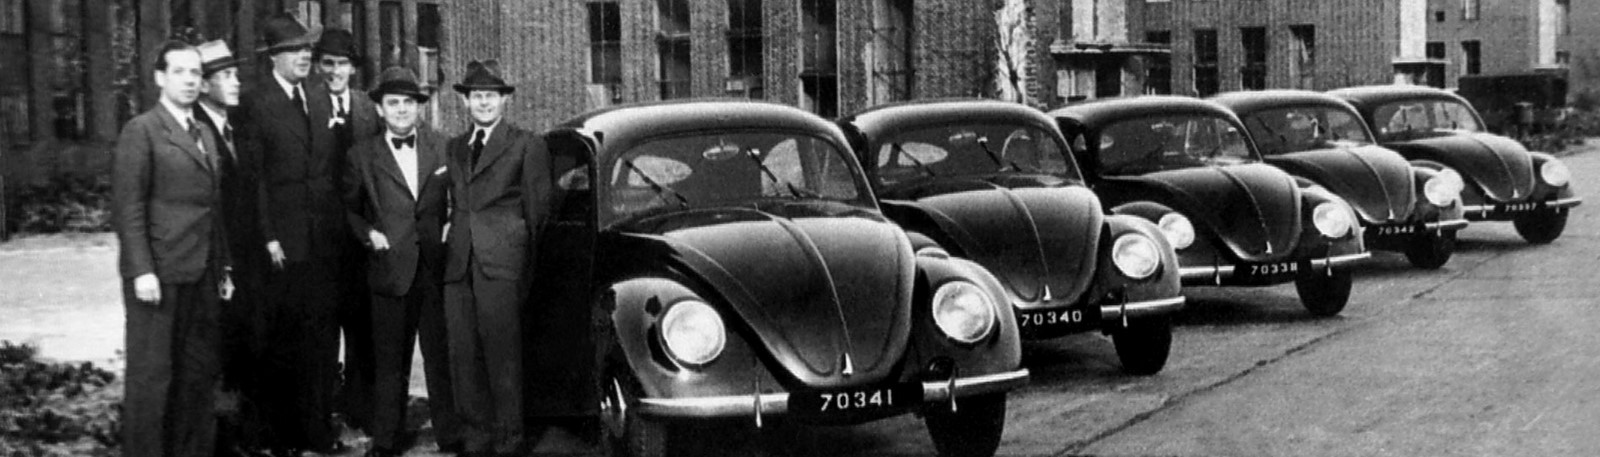 10 Things you did not know about Volkswagen - Sheet6